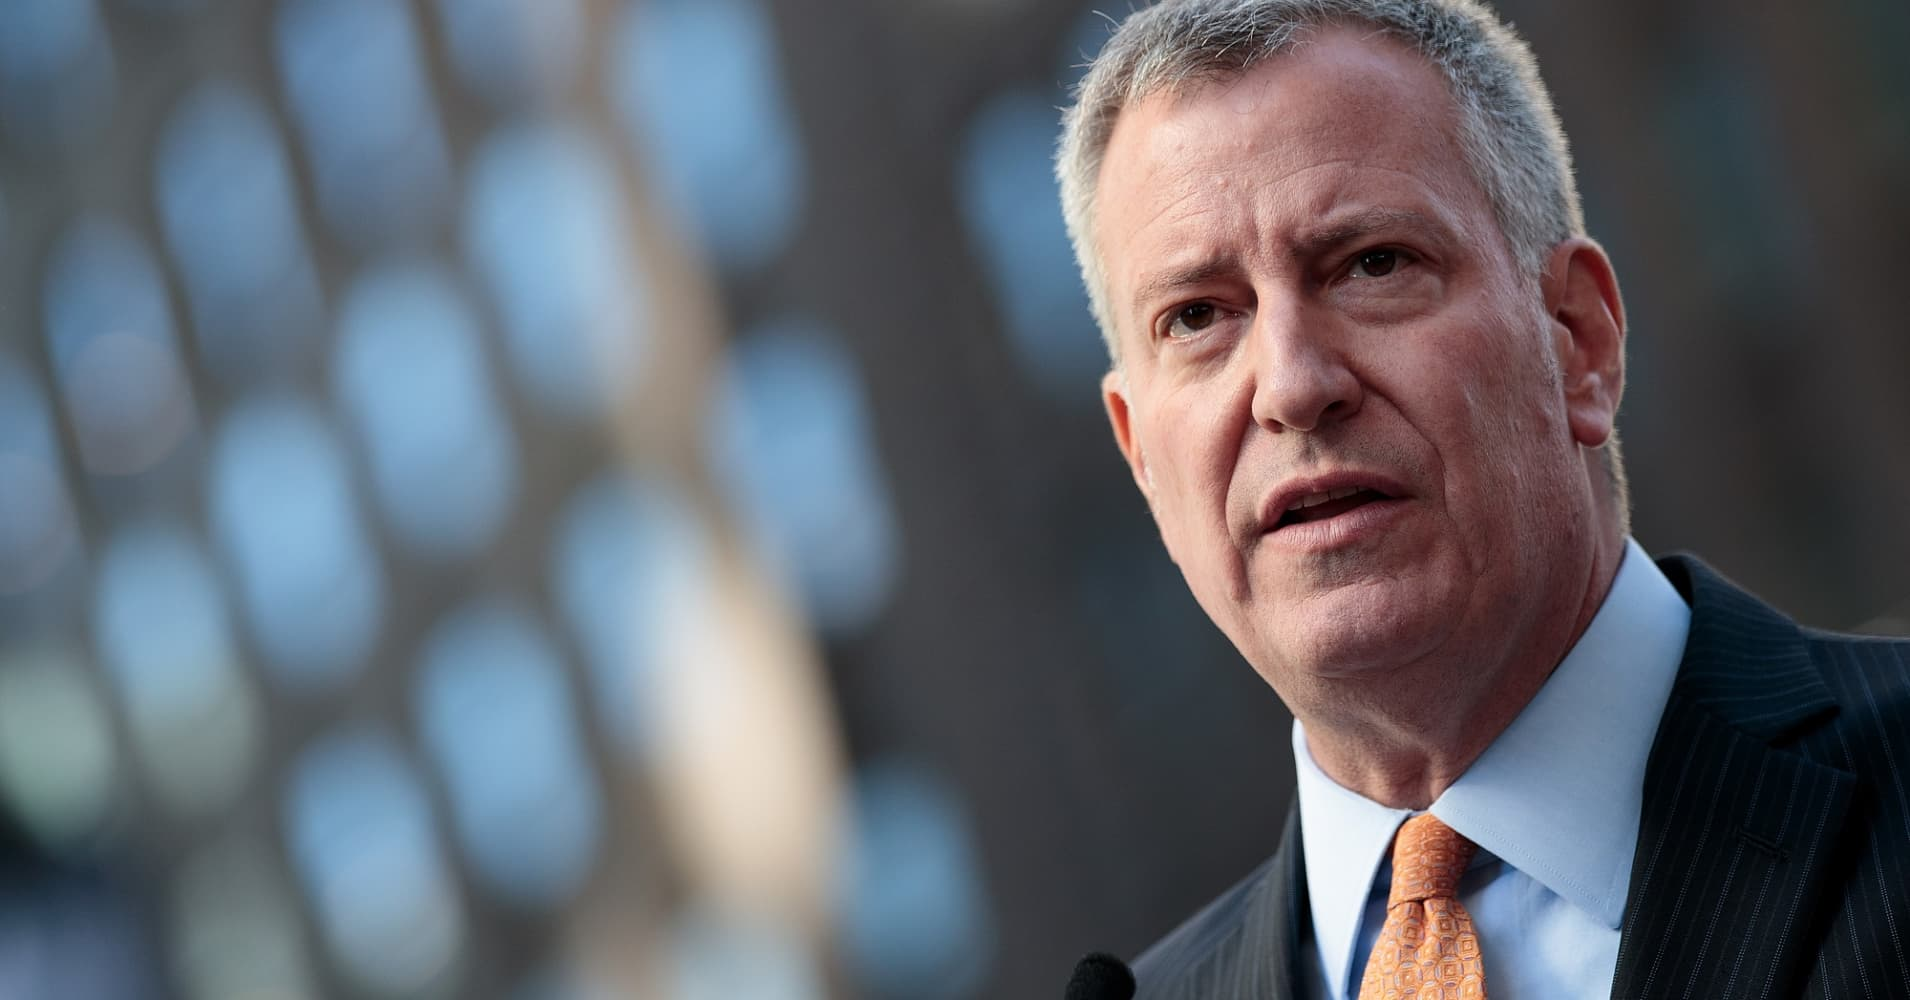 New York City Mayor Bill de Blasio - legislation passed